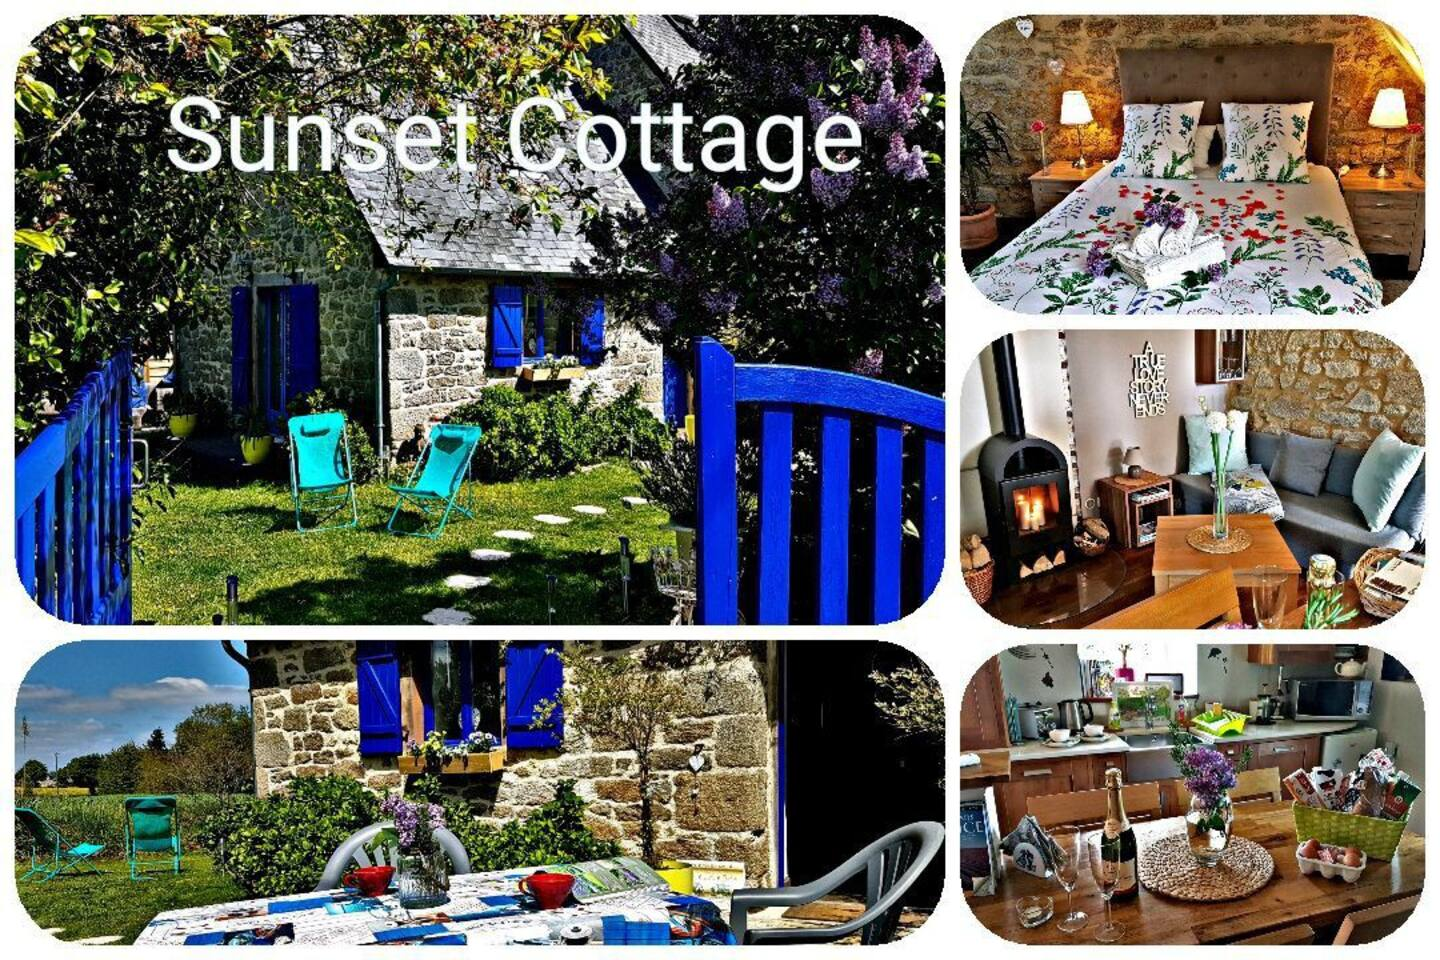 Welcome to Sunset Cottage